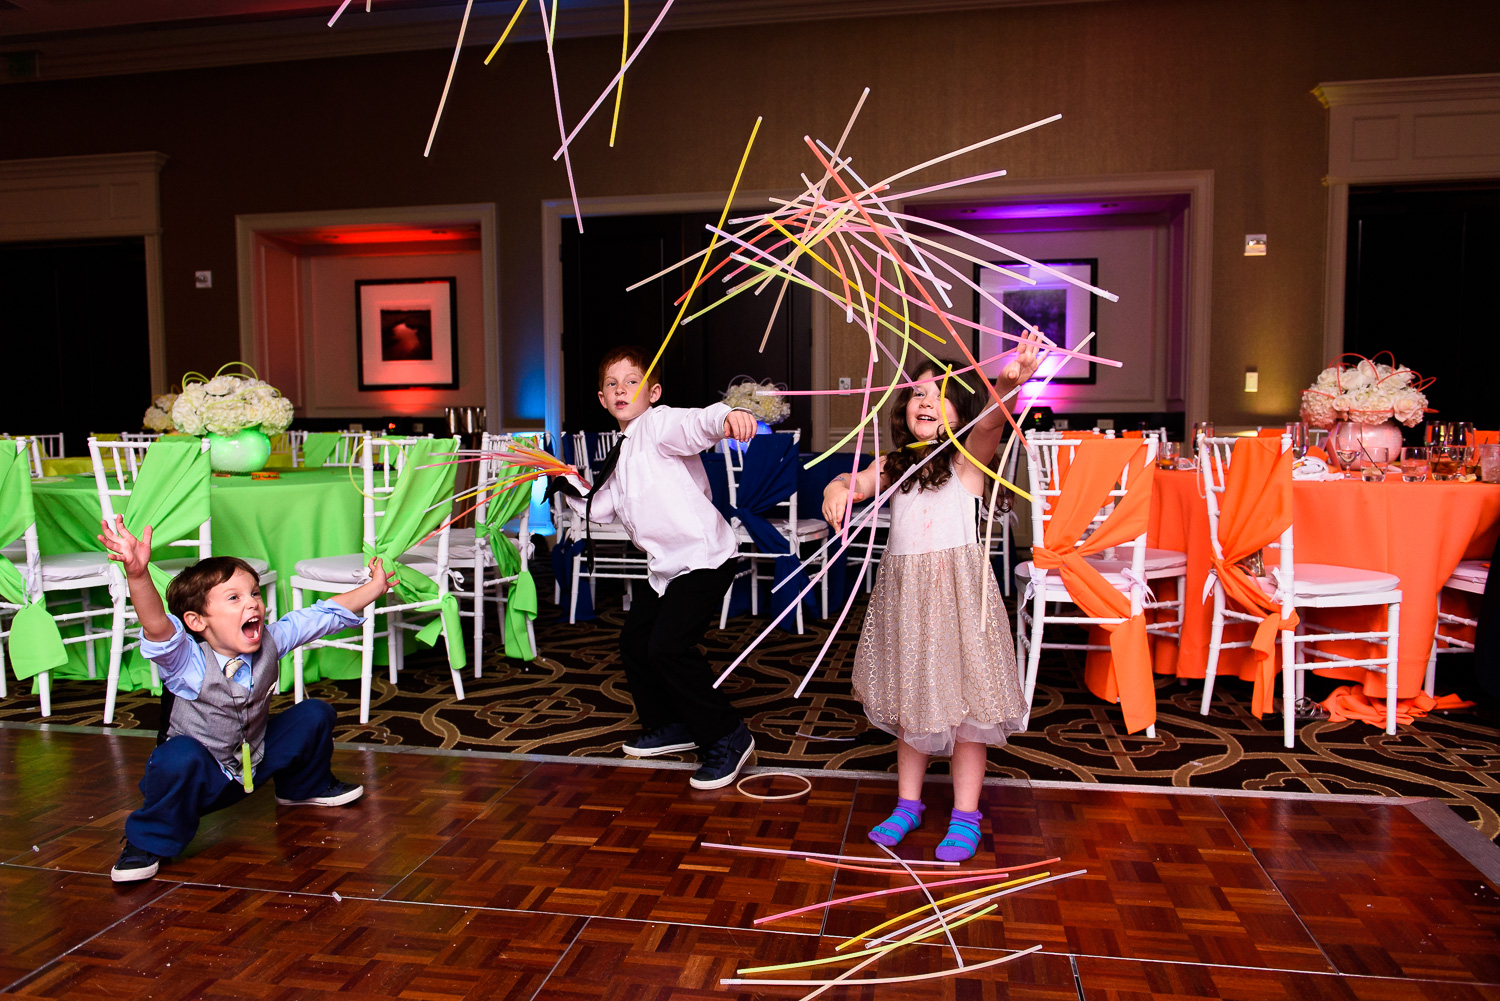 ReissS_Party_253©2015MIALYNNphotography.jpg